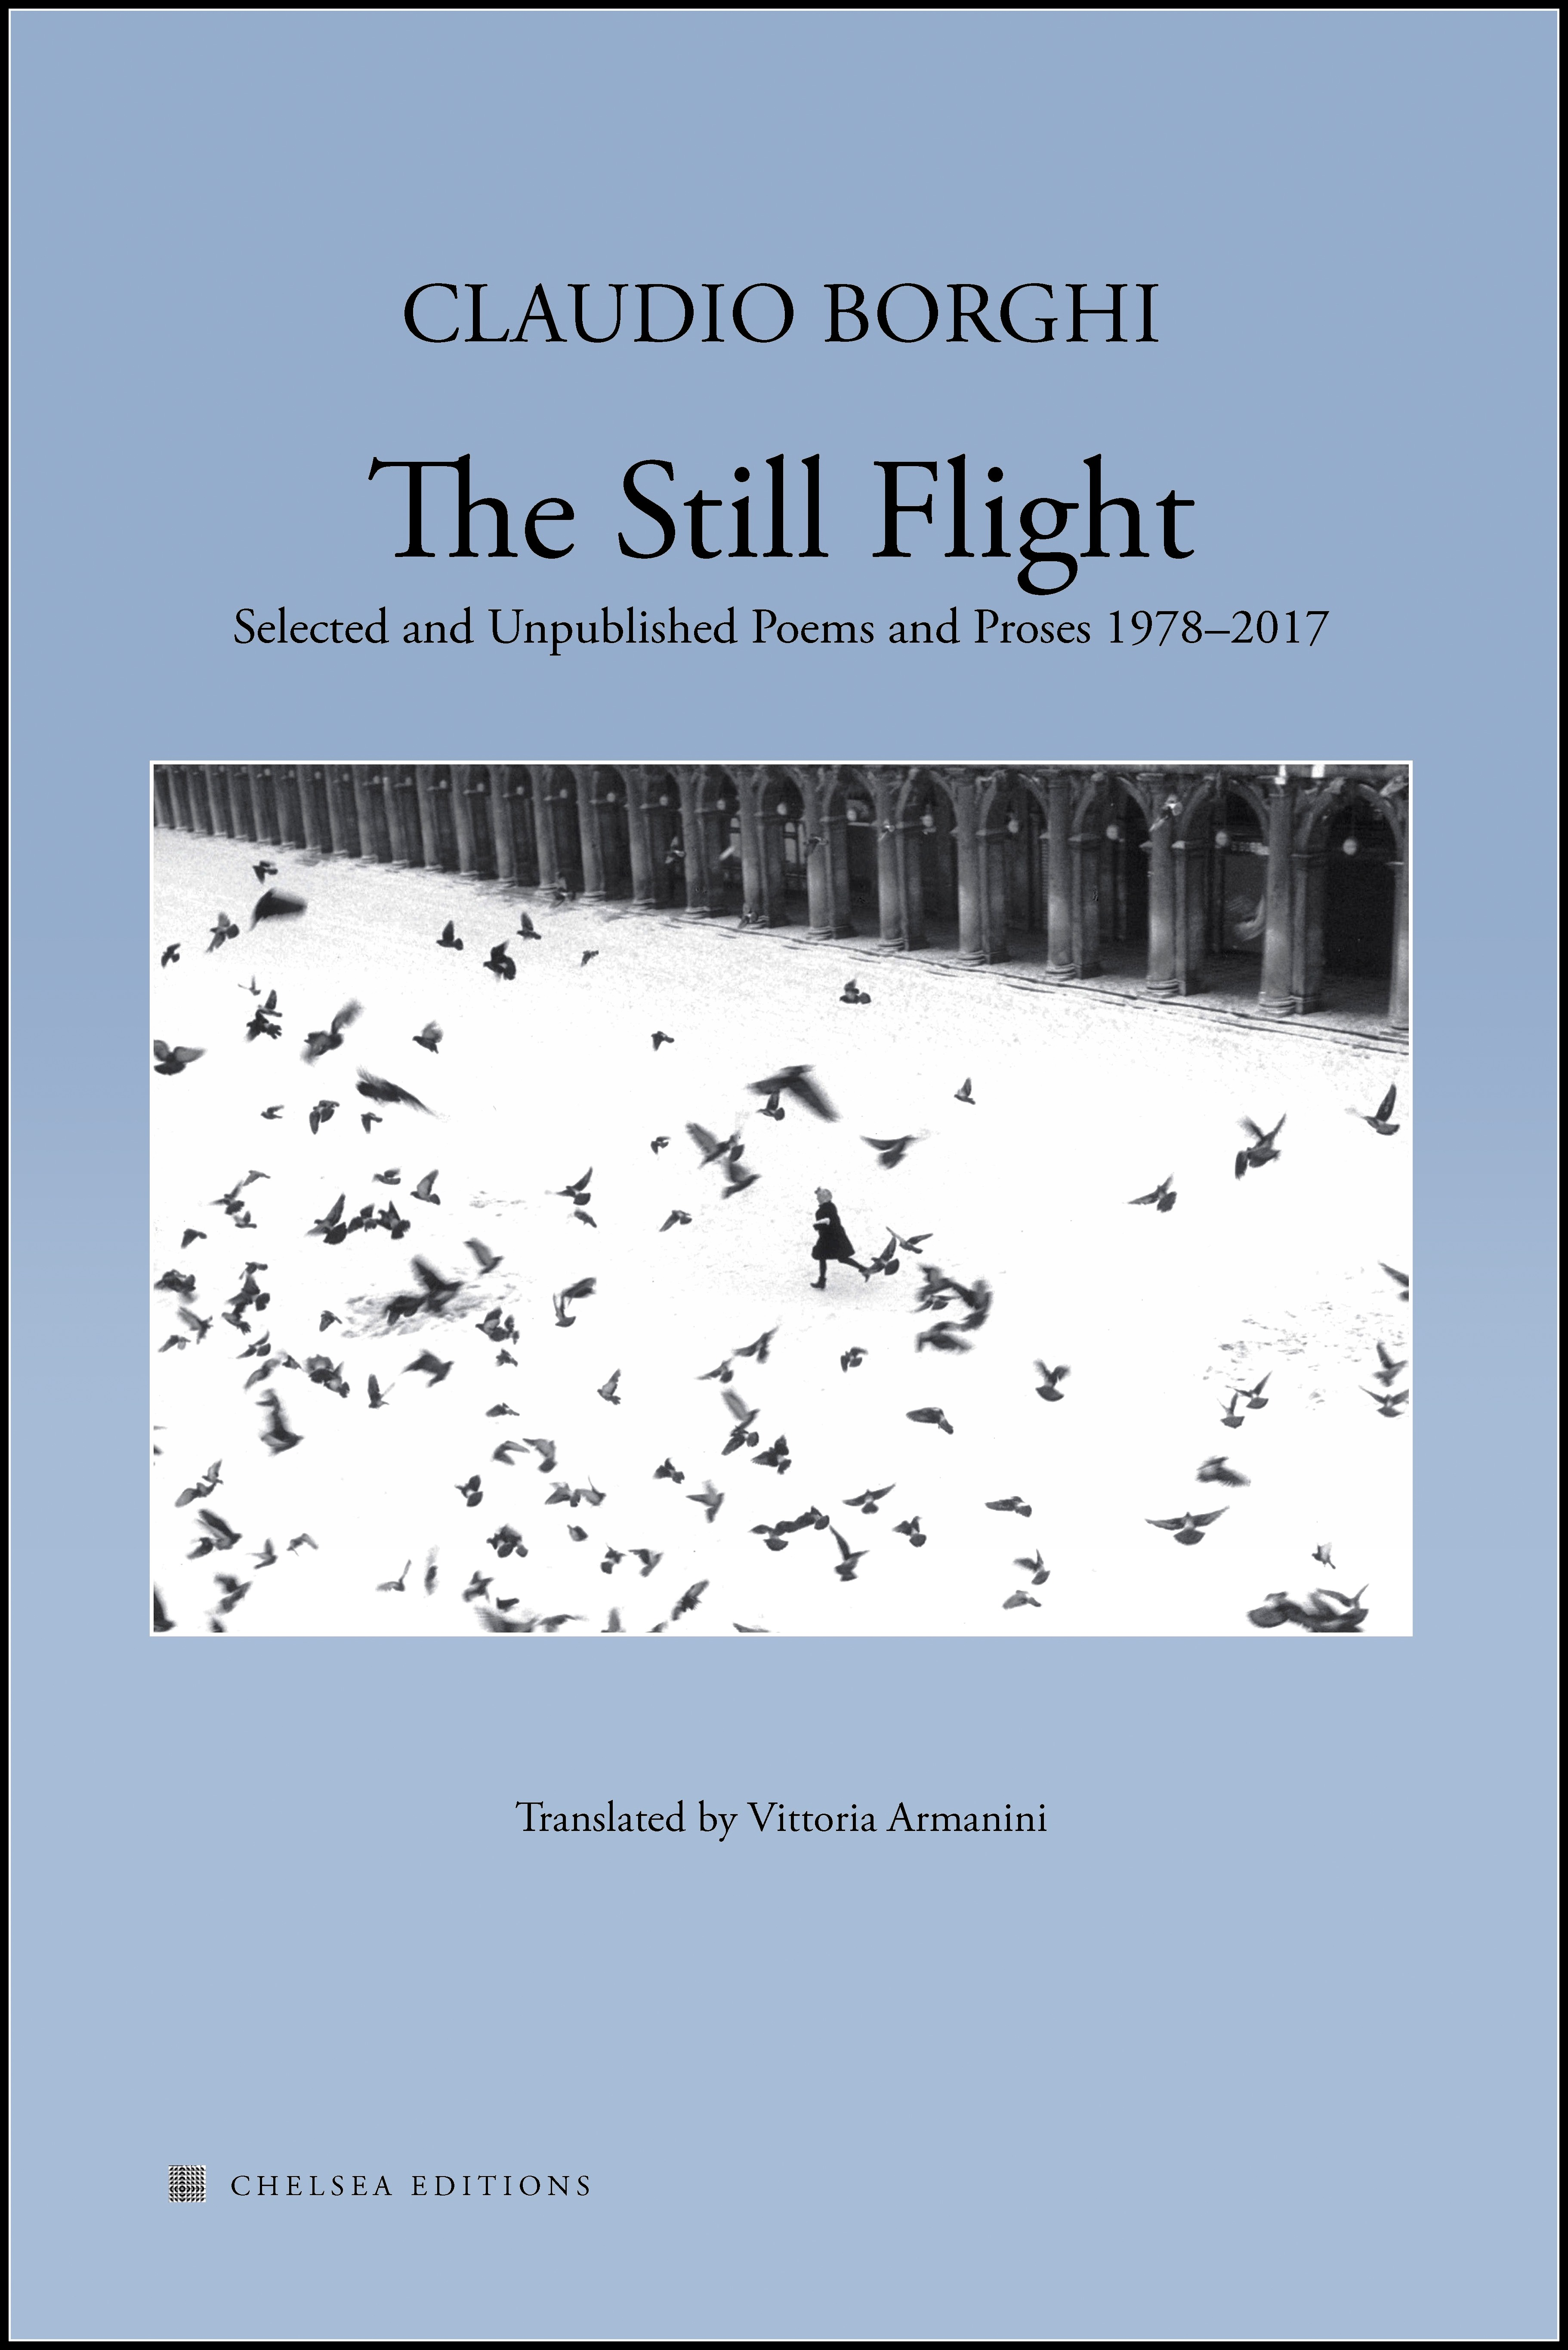 THE STILL FLIGHT: Selected and Unpublished Poems & Proses 1978-2017